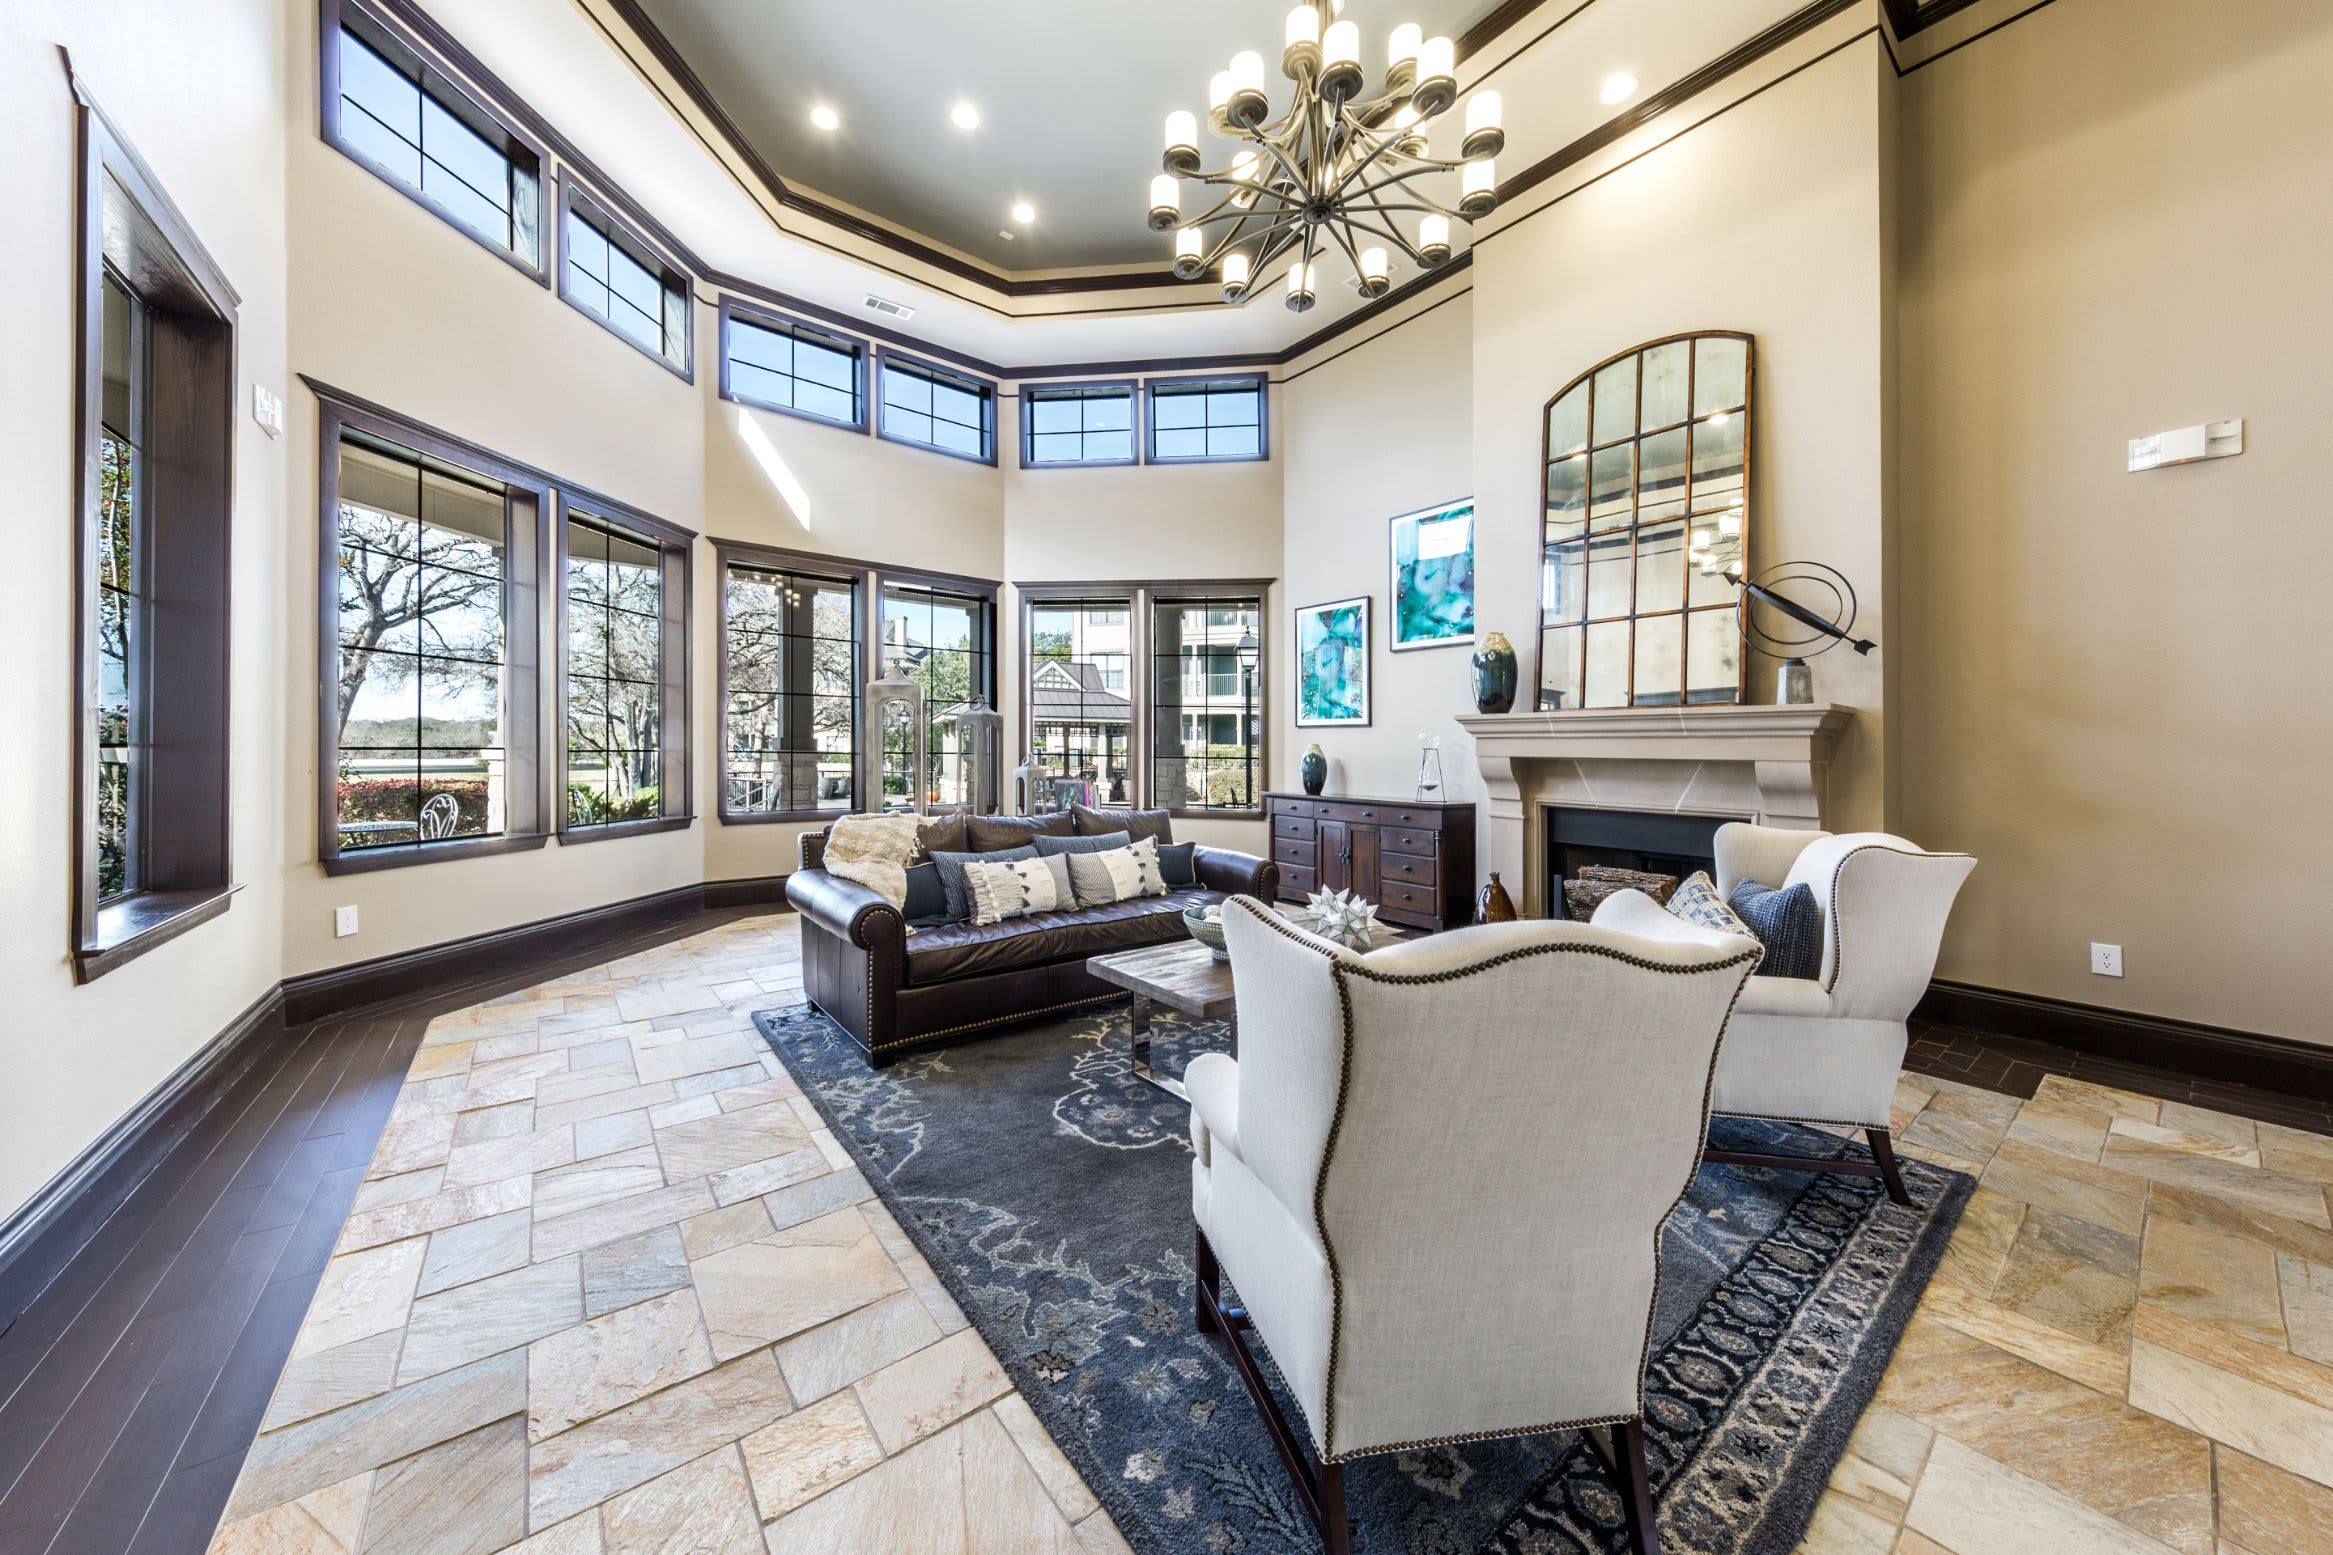 Bright lobby area with multiple large windows and tile floors at The Marquis at Brushy Creek in Austin, Texas